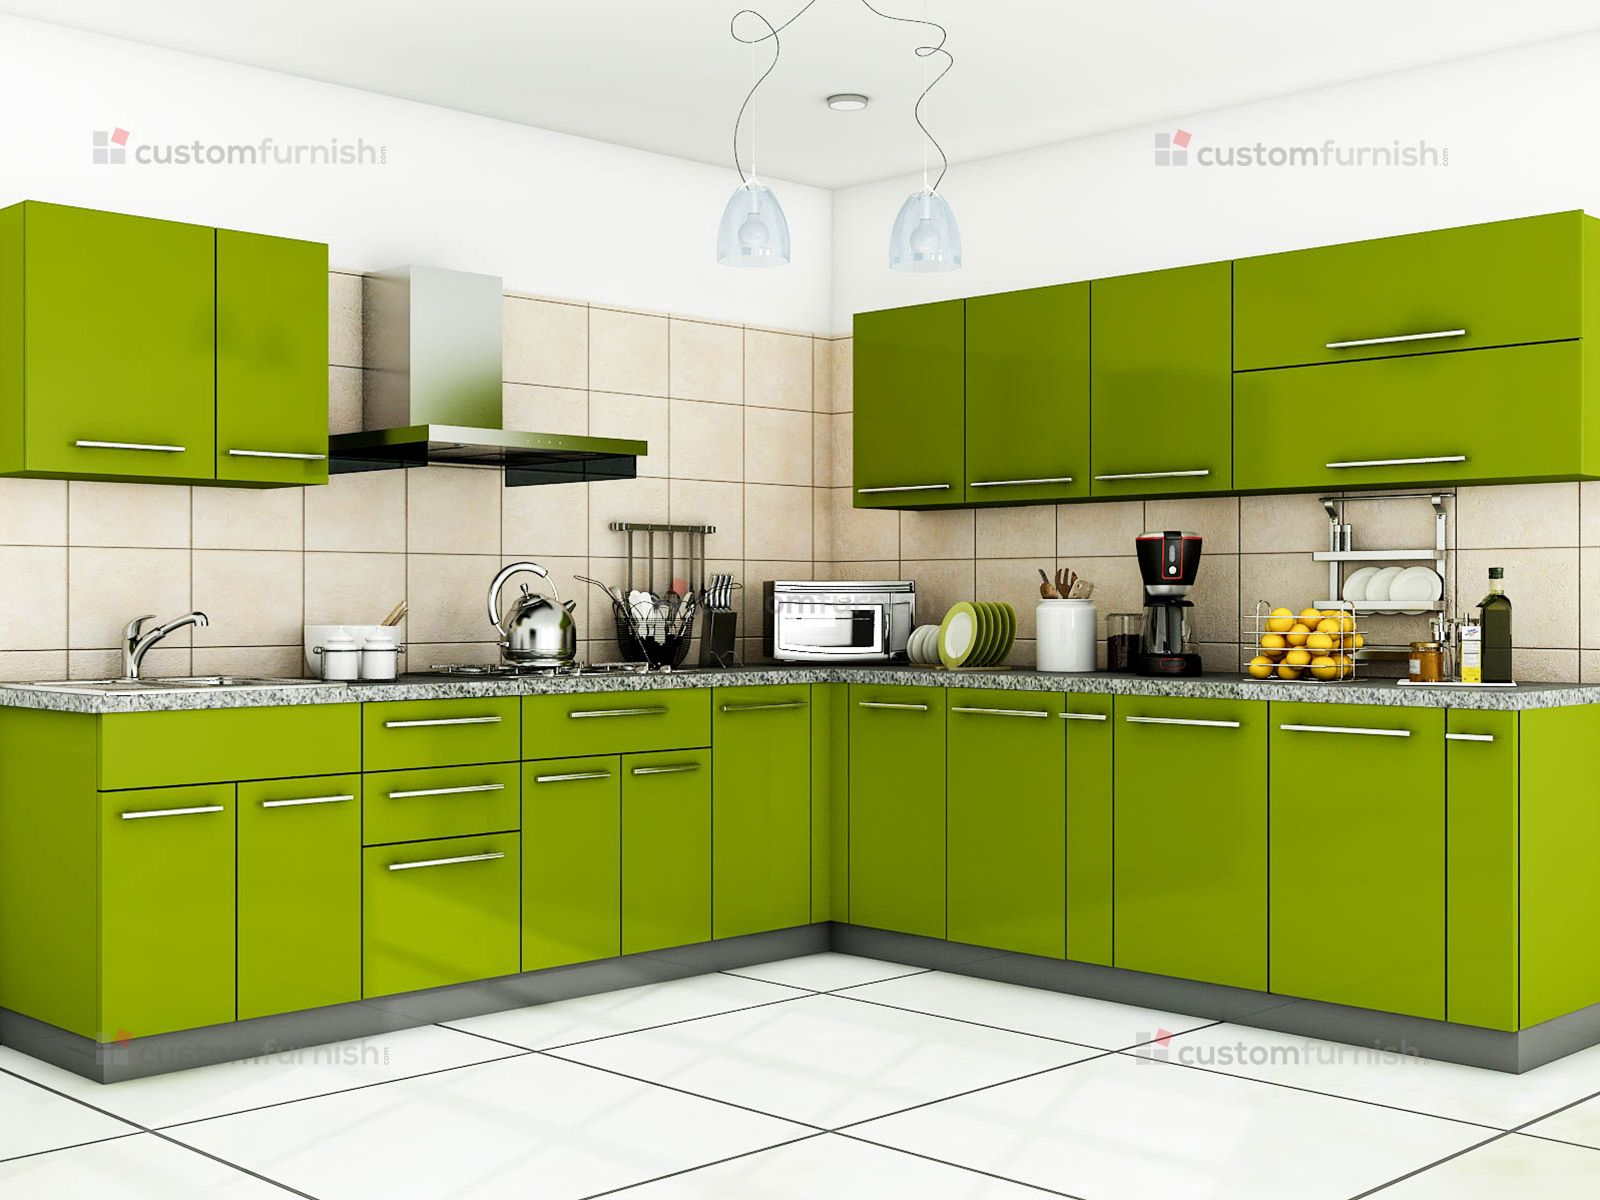 Diy Sos Kitchen Design 5 Reasons Why Modular Kitchen Designs Are The Latest Trend In Home